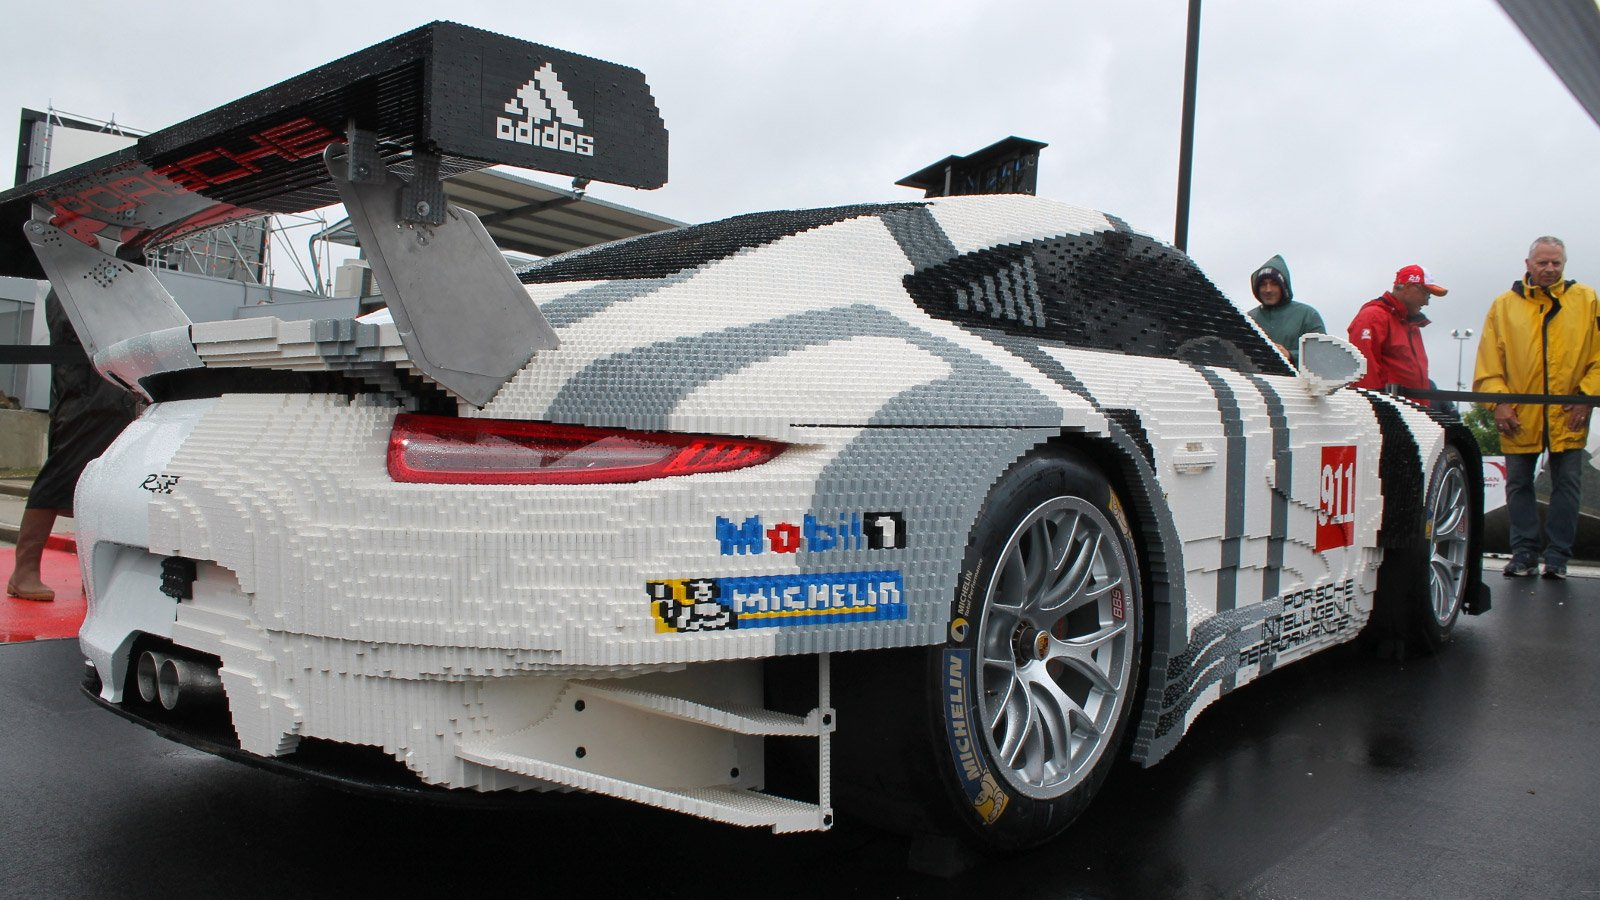 This Life-Size Porsche is 50% LEGO